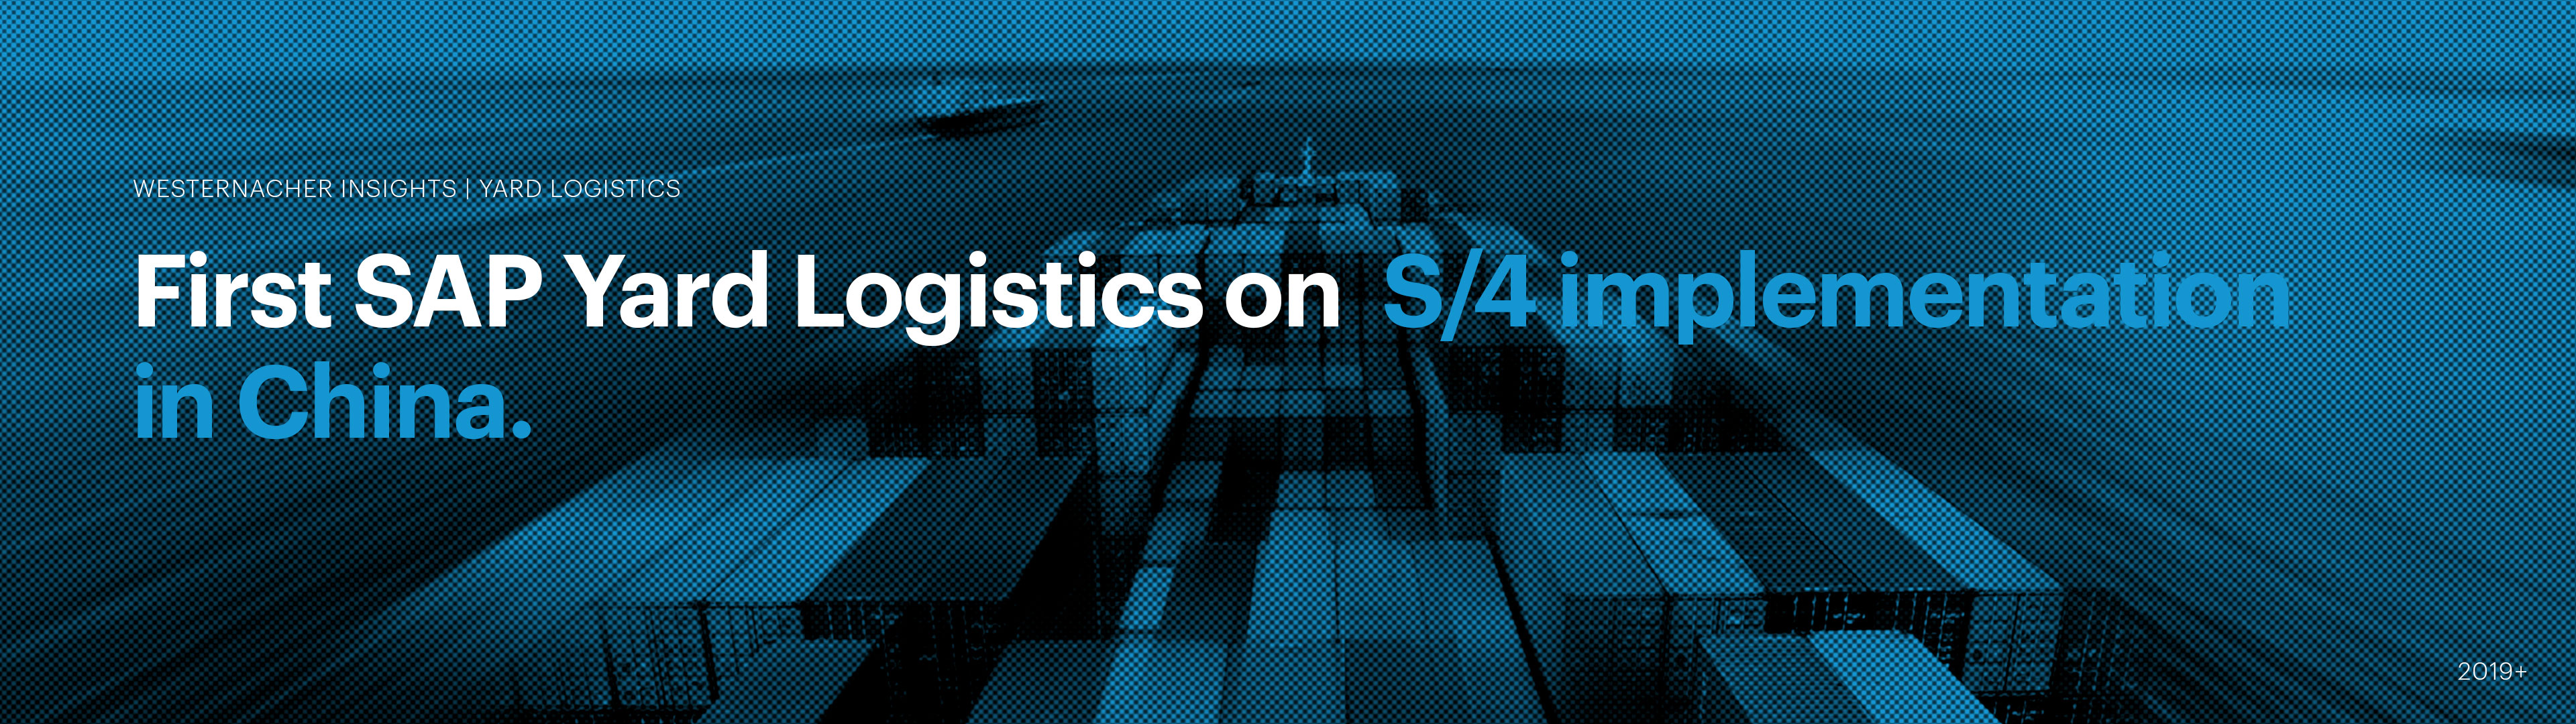 Westernacher Insights: SAP Yard Logistics in China | westernacher-consulting.com